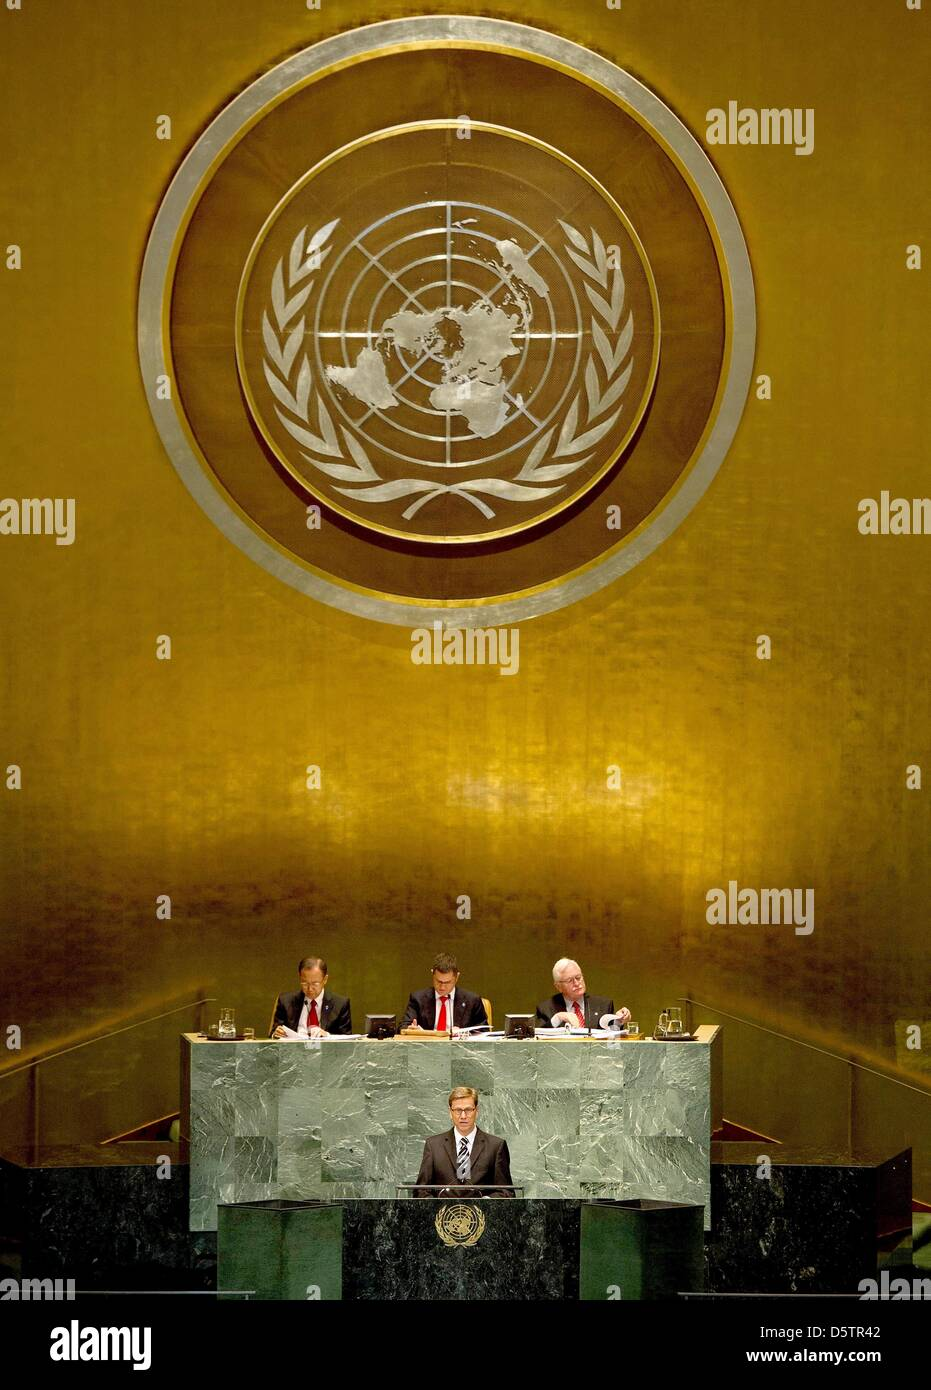 Guido Westerwelle (C front), the Federal Minister for Foreign Affairs of Germany, addresses a high level meeting - Stock Image